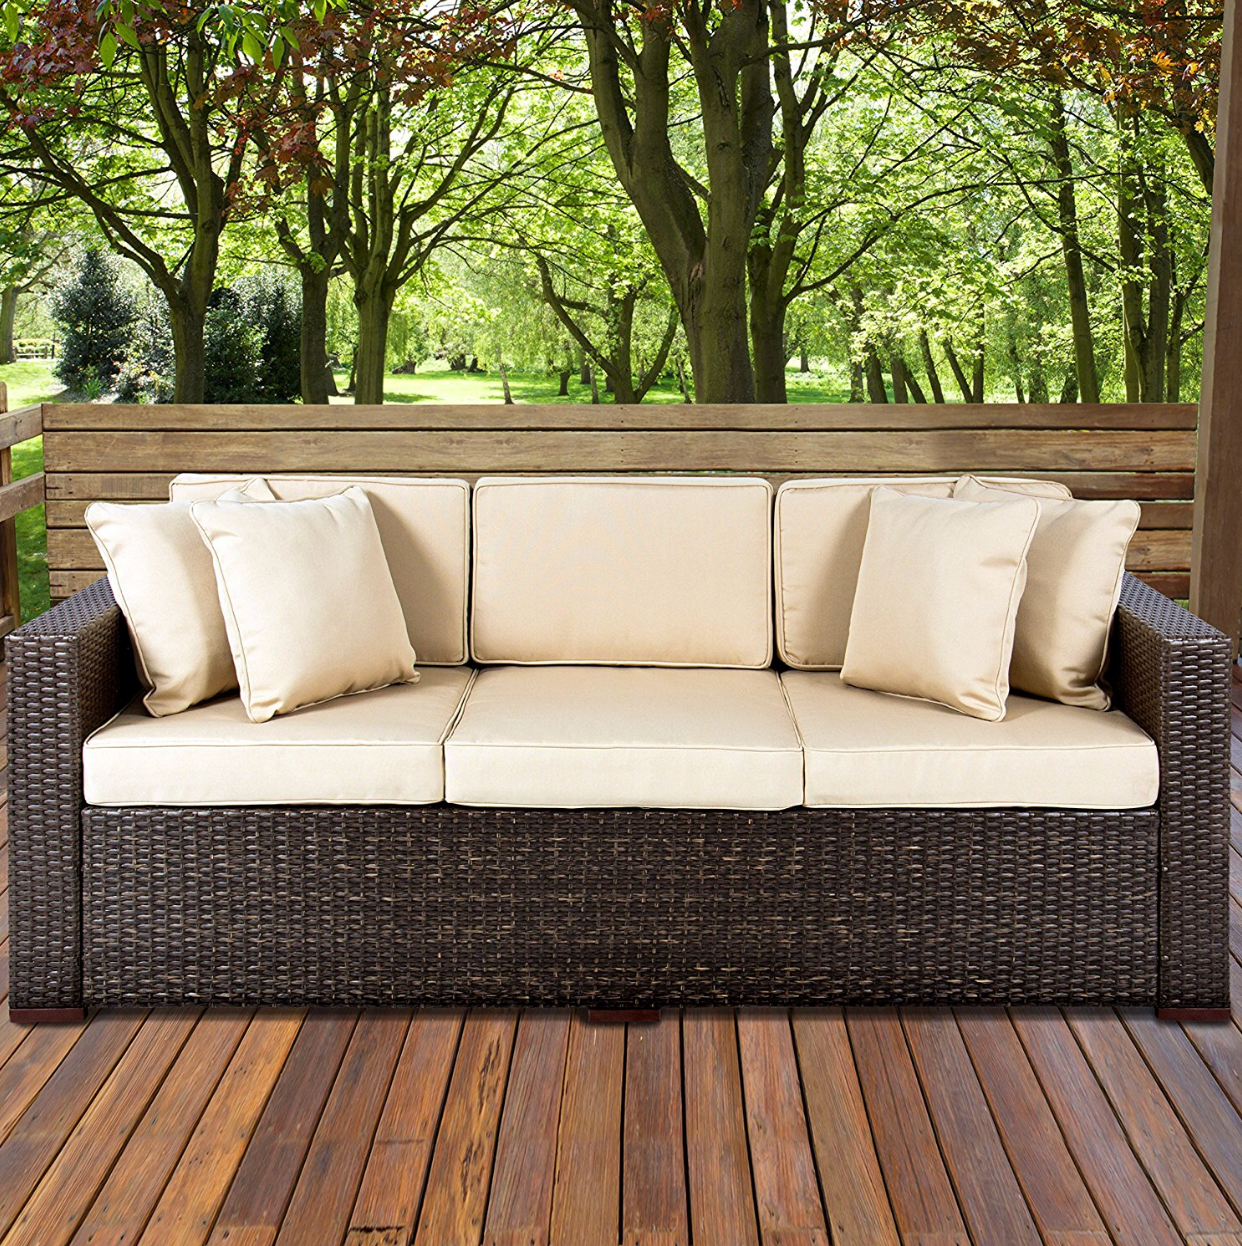 3-Seat Outdoor Wicker Sofa - by Best Choice Products at Amazon.com